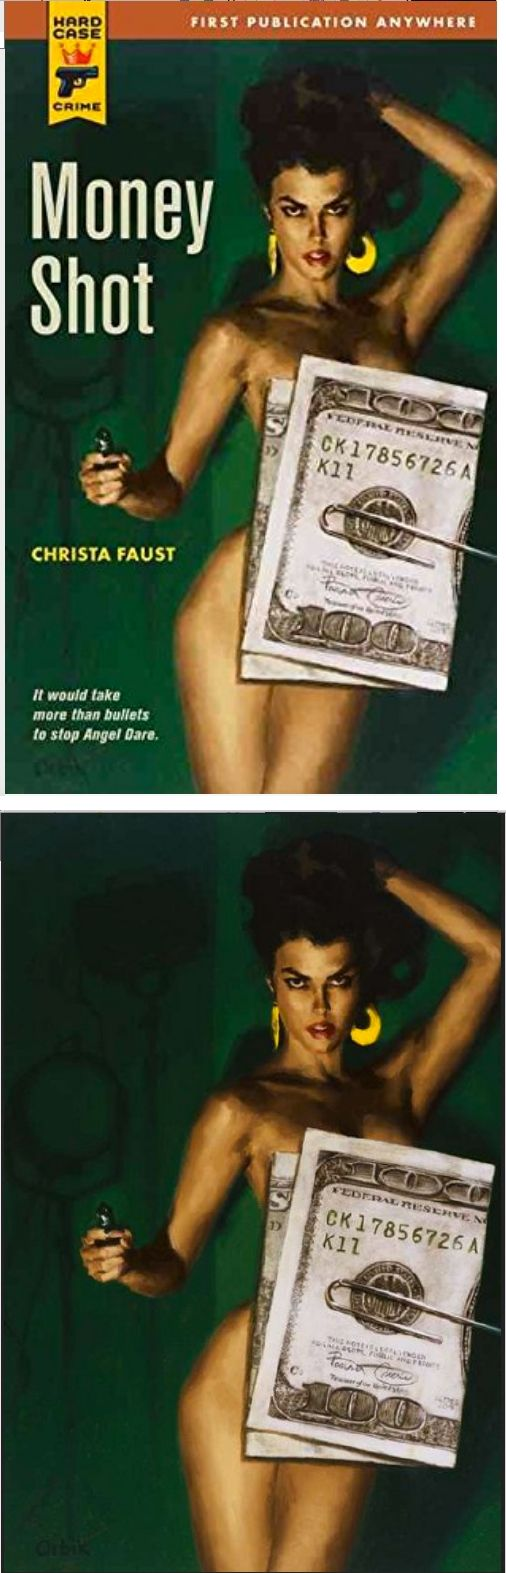 GLEN ORBIK - Money Shot by Christa Faust - 2008 Hard Case Crime - cover by amazon - print by americangallery.files.wordpress